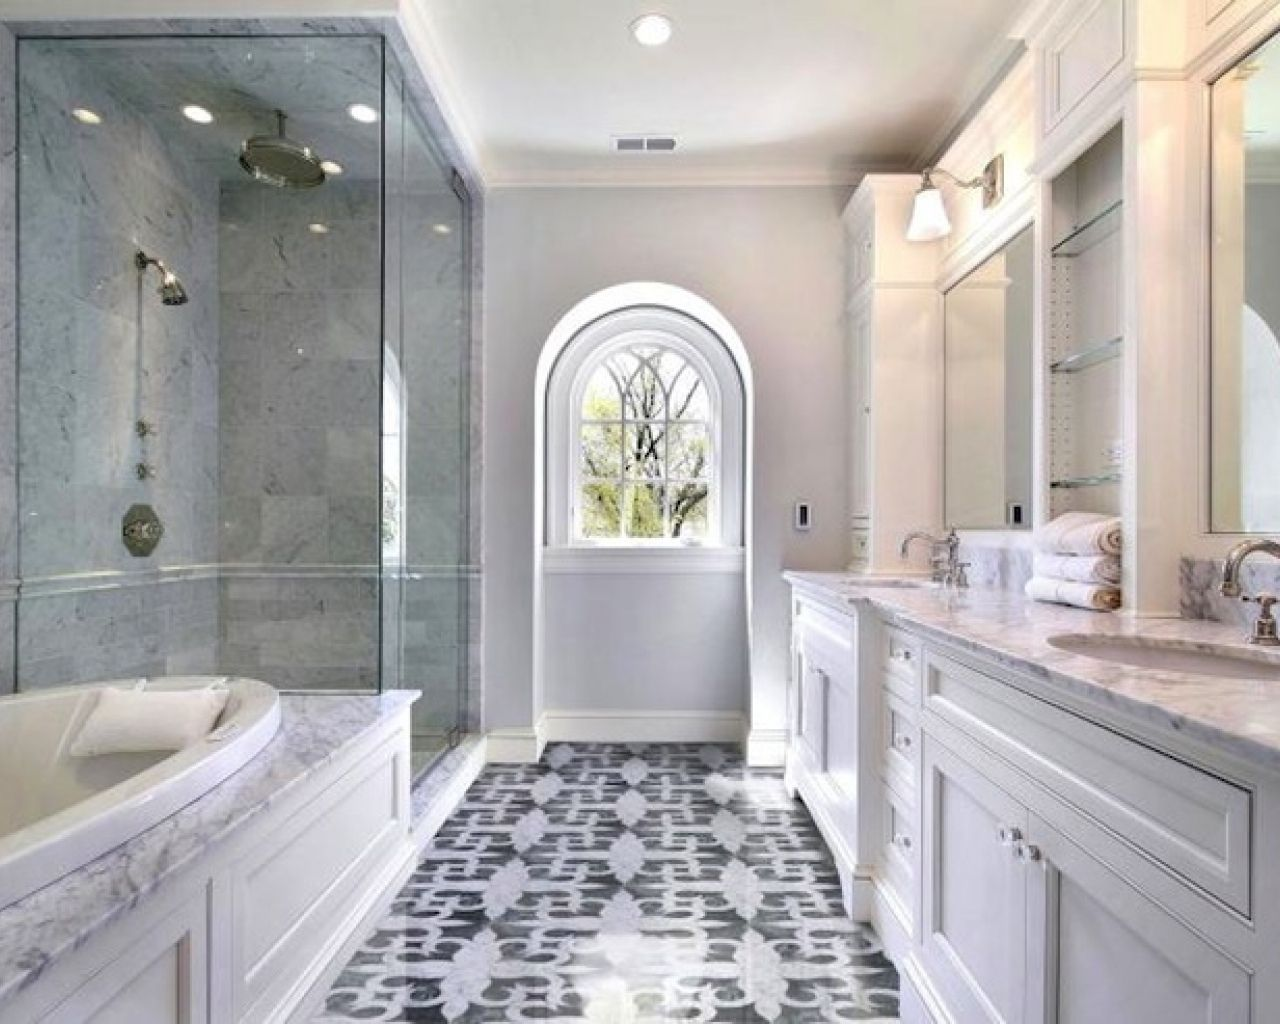 Tile Flooring 30 Ideas About Marble Bathroom Tiles Pros And Cons Mosaic Floor Interesting